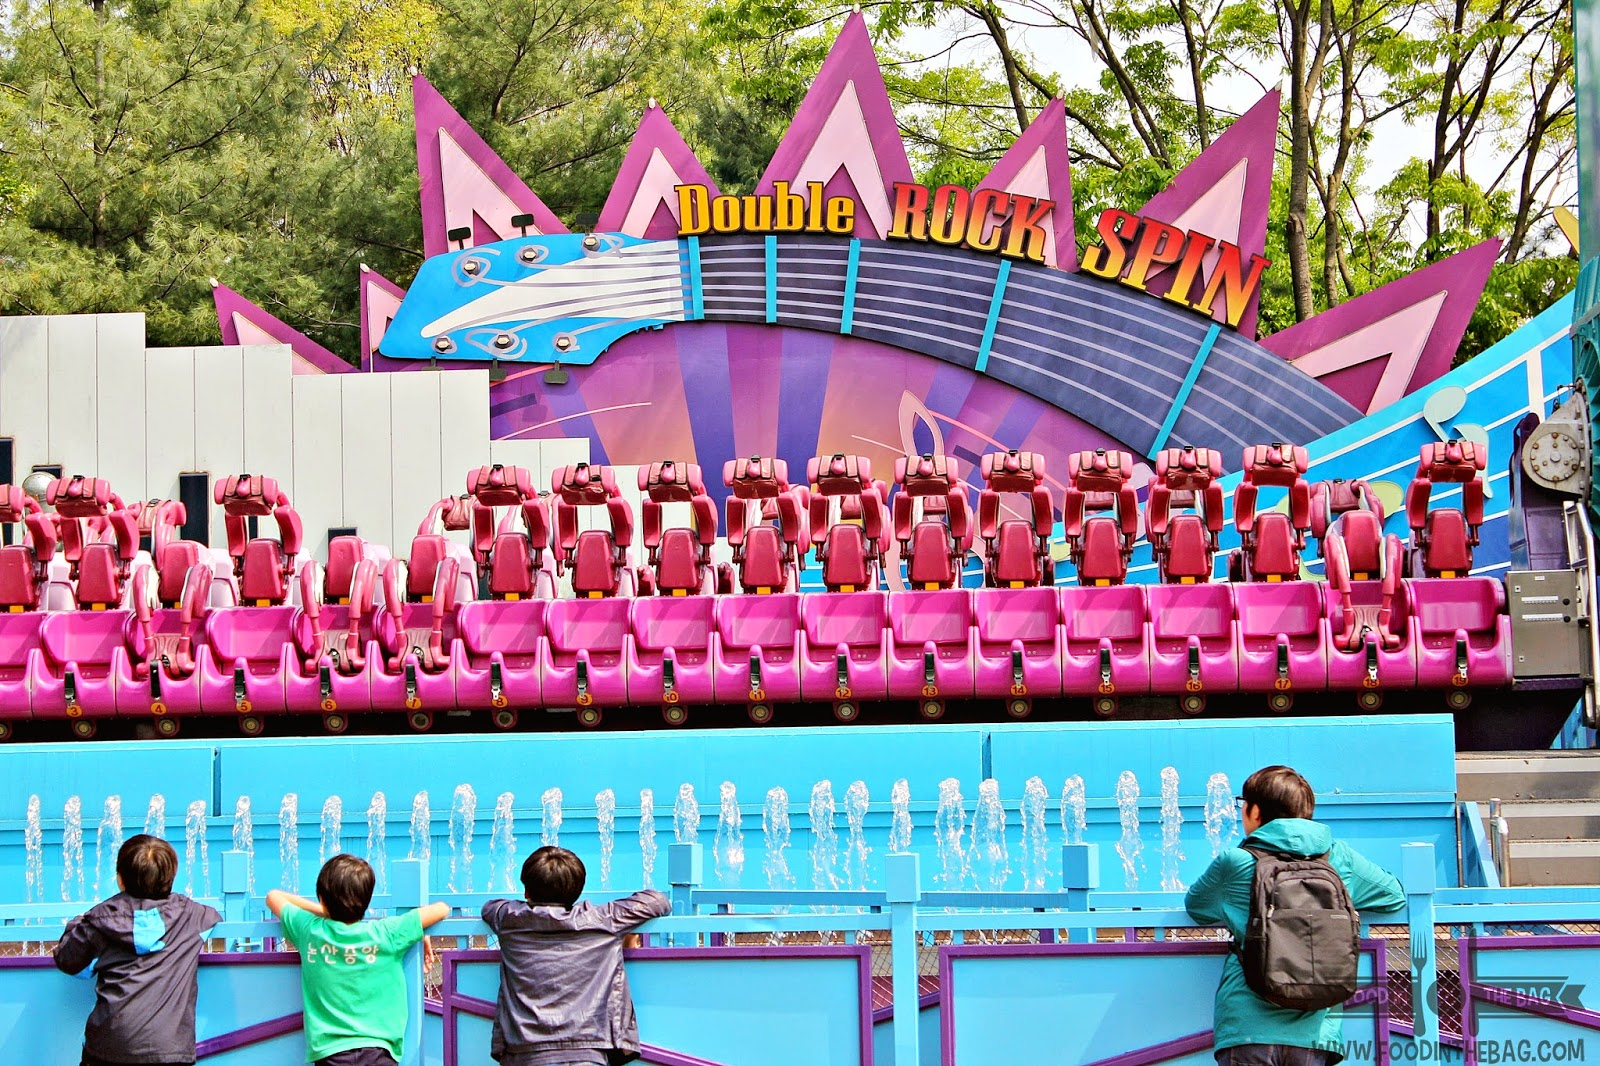 samsung and theme park in korea 2 essay On day 4 of our korea vacation, we visited everland - world's seventh largest outdoor amusement park and stayed at yong pyong all seasons resort.